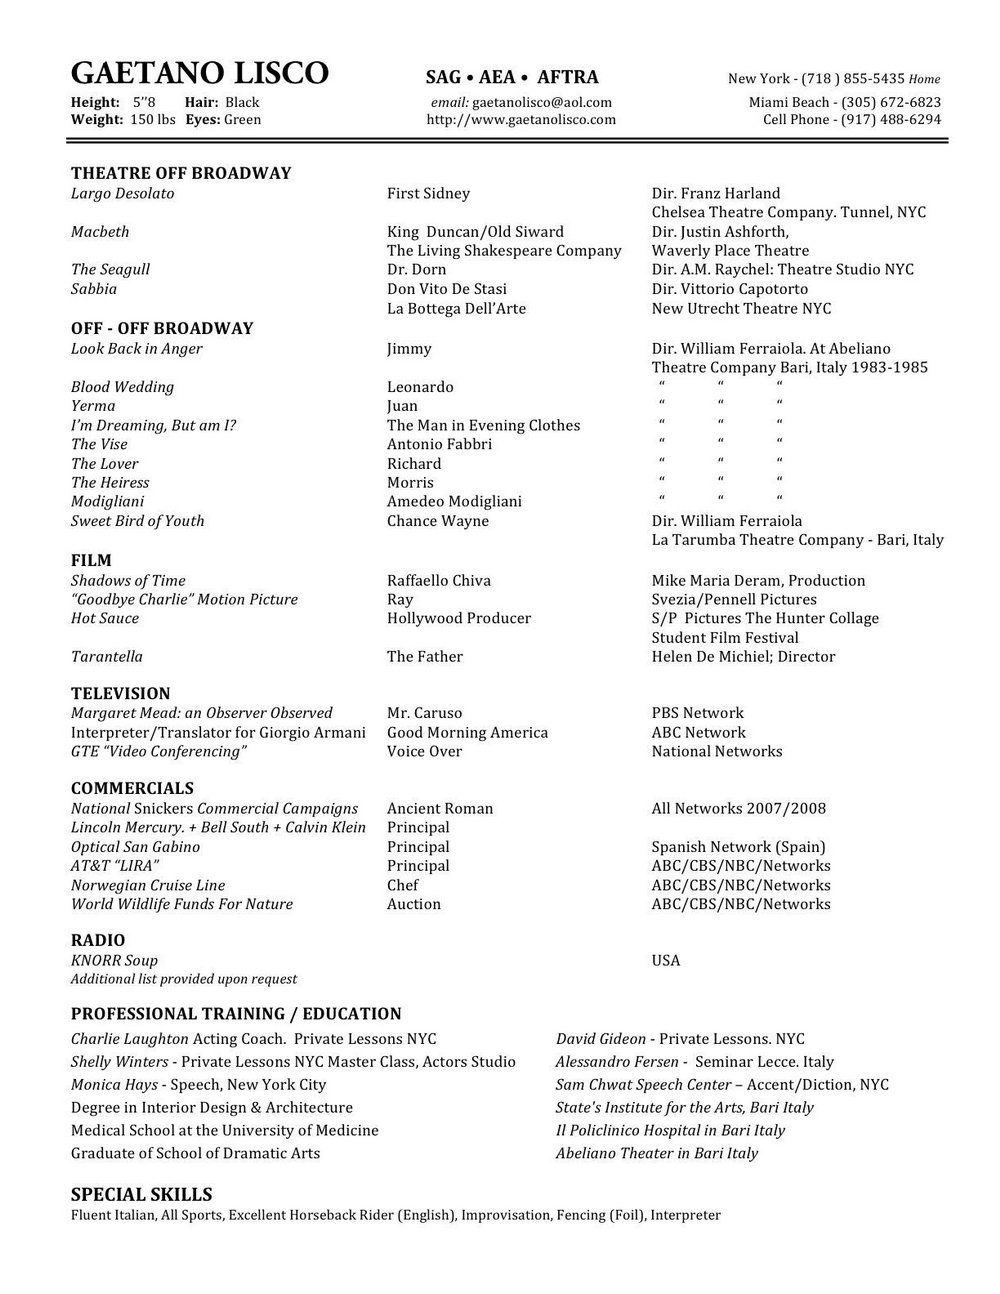 Copy And Paste Resume Template Free